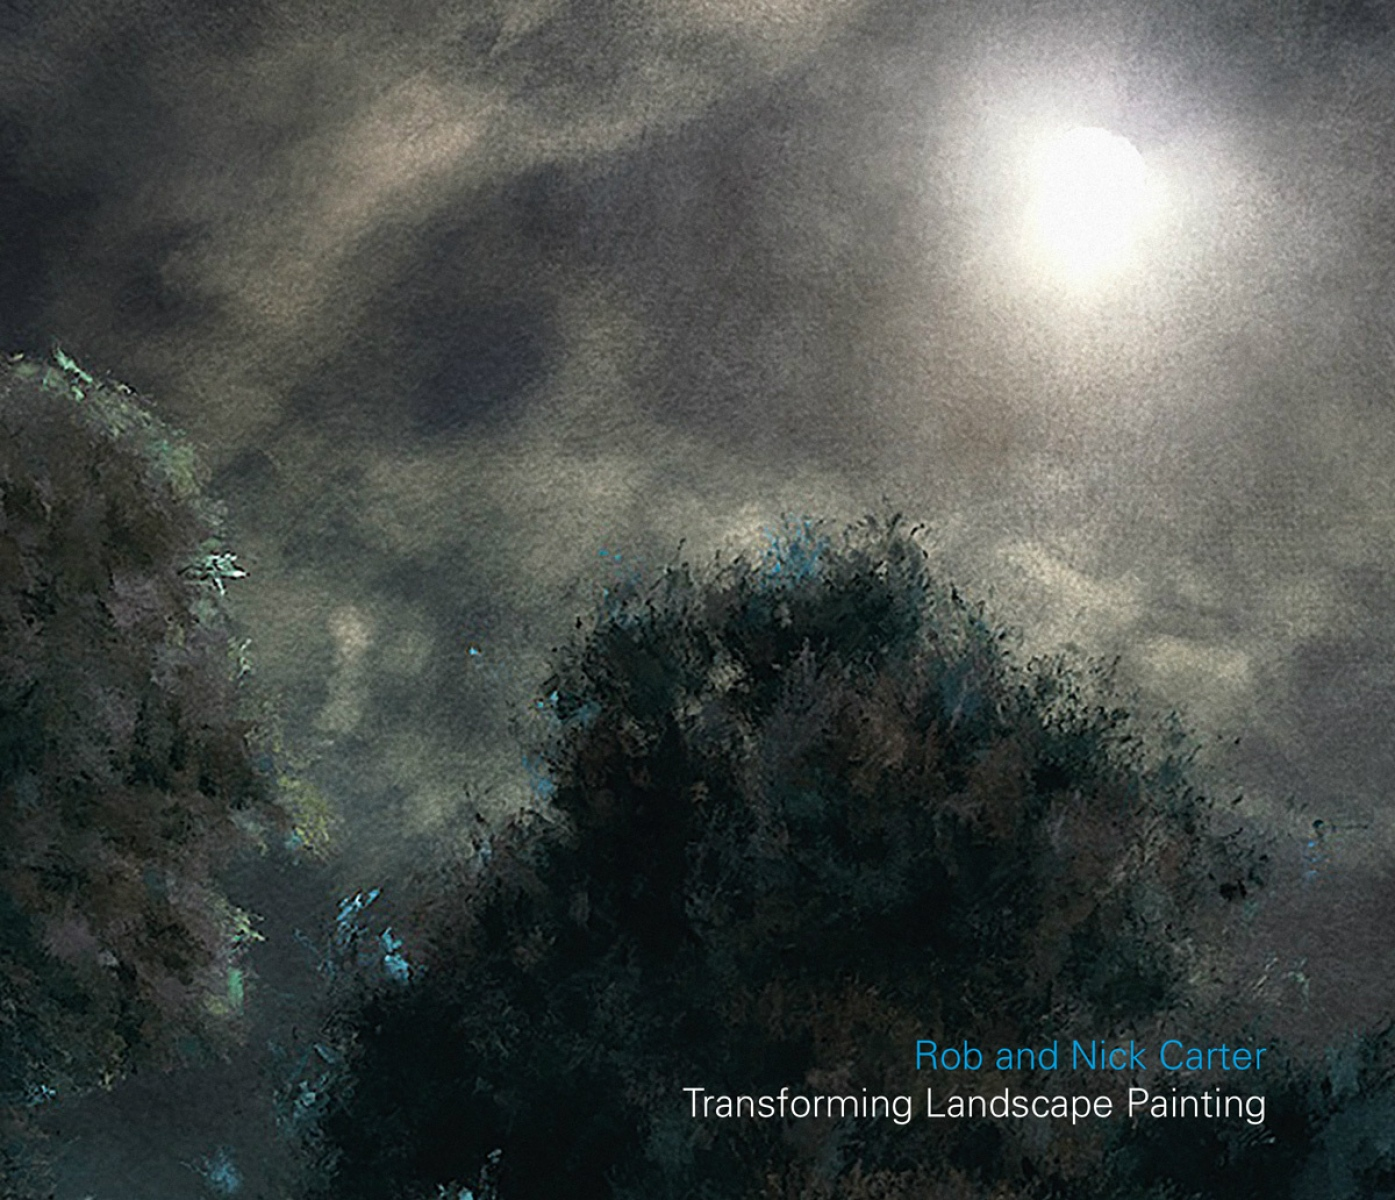 Rob and Nick Carter - Transforming Landscape Painting · © Copyright 2018